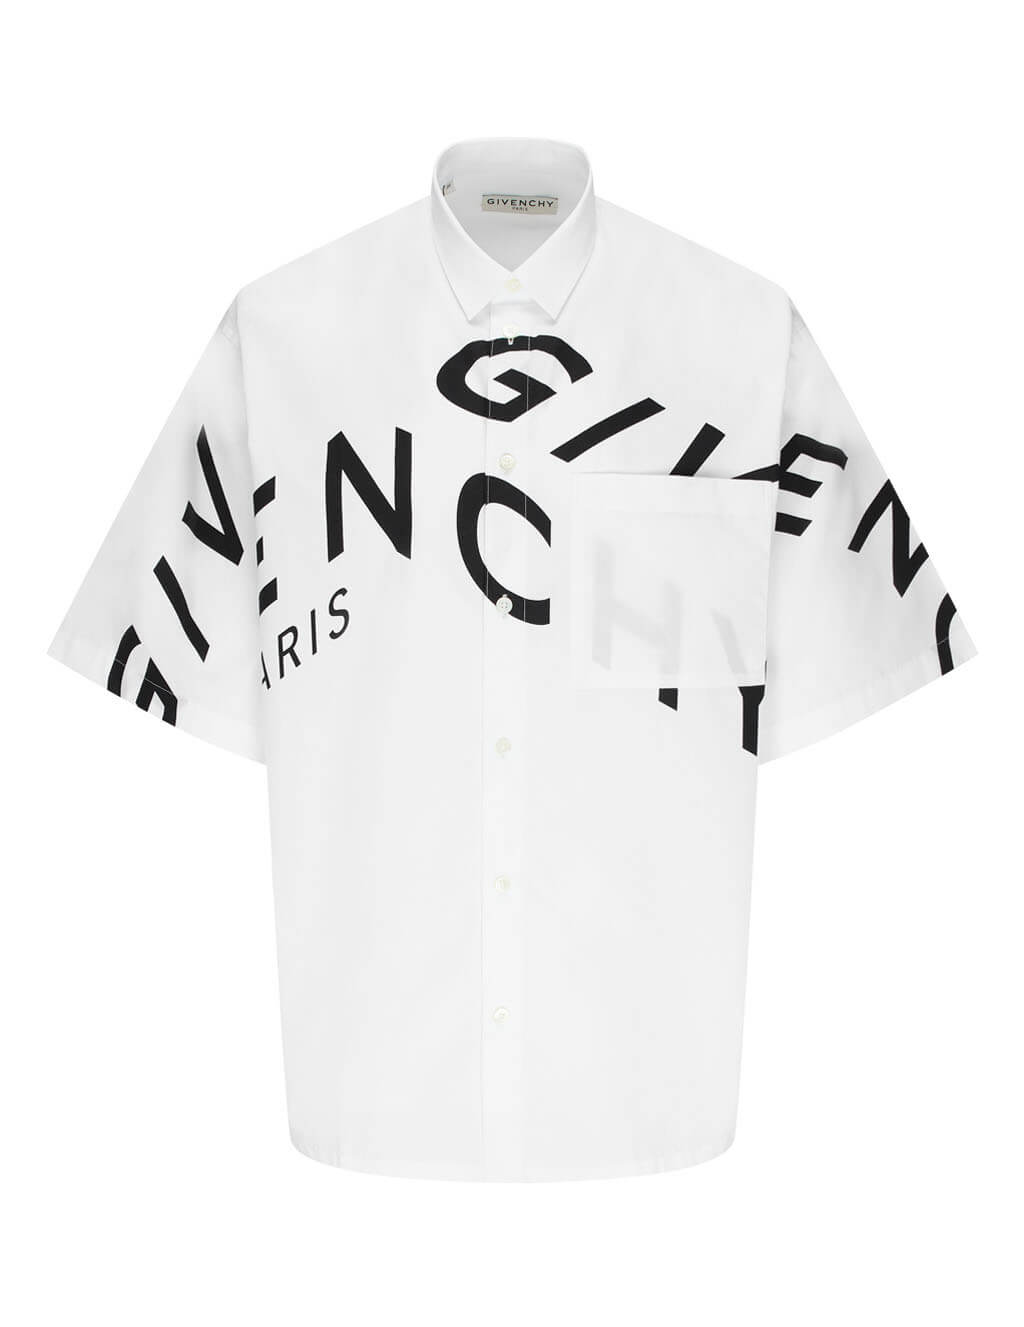 Givenchy Men's Giulio Fashion White Refracted Shirt BM60L3109F-100